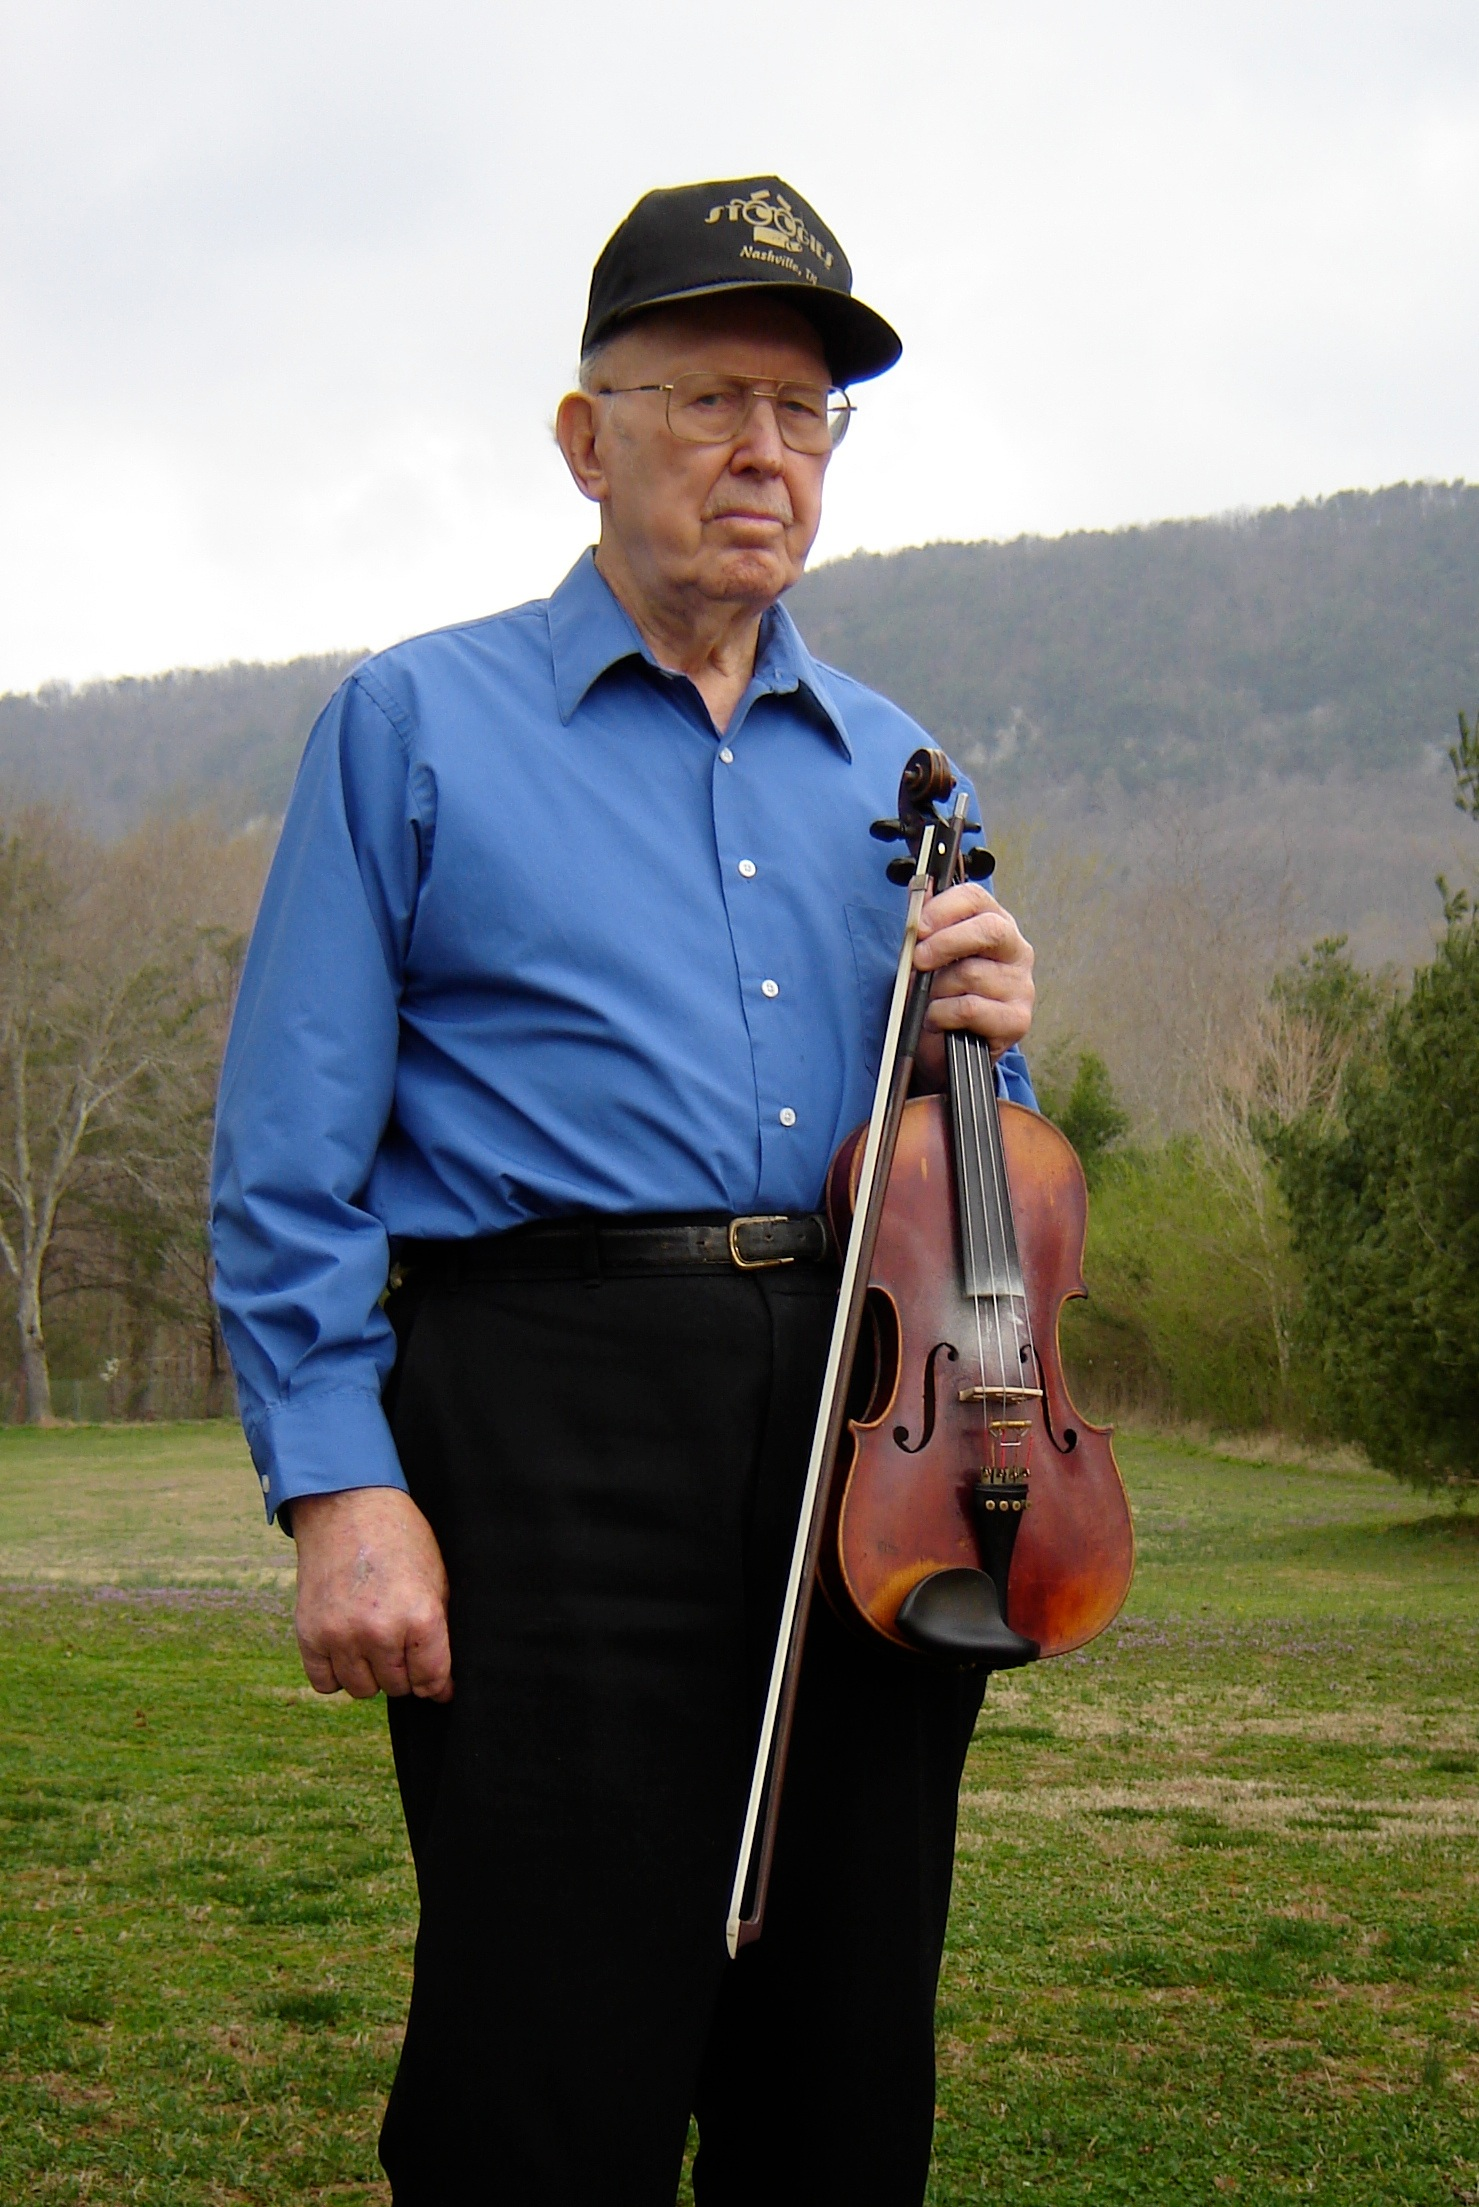 Clint Kilgore, Sequatchie Valley fiddler. Early 2000s. Clint Kilgore was a fine fiddler and played in Chattanooga with 1920s recording artist Jess Young when he was a teen. Not too long after, he gigged with Lowe Stokes just south of Chattanooga, Tennessee. Photo by Joseph Decosimo.